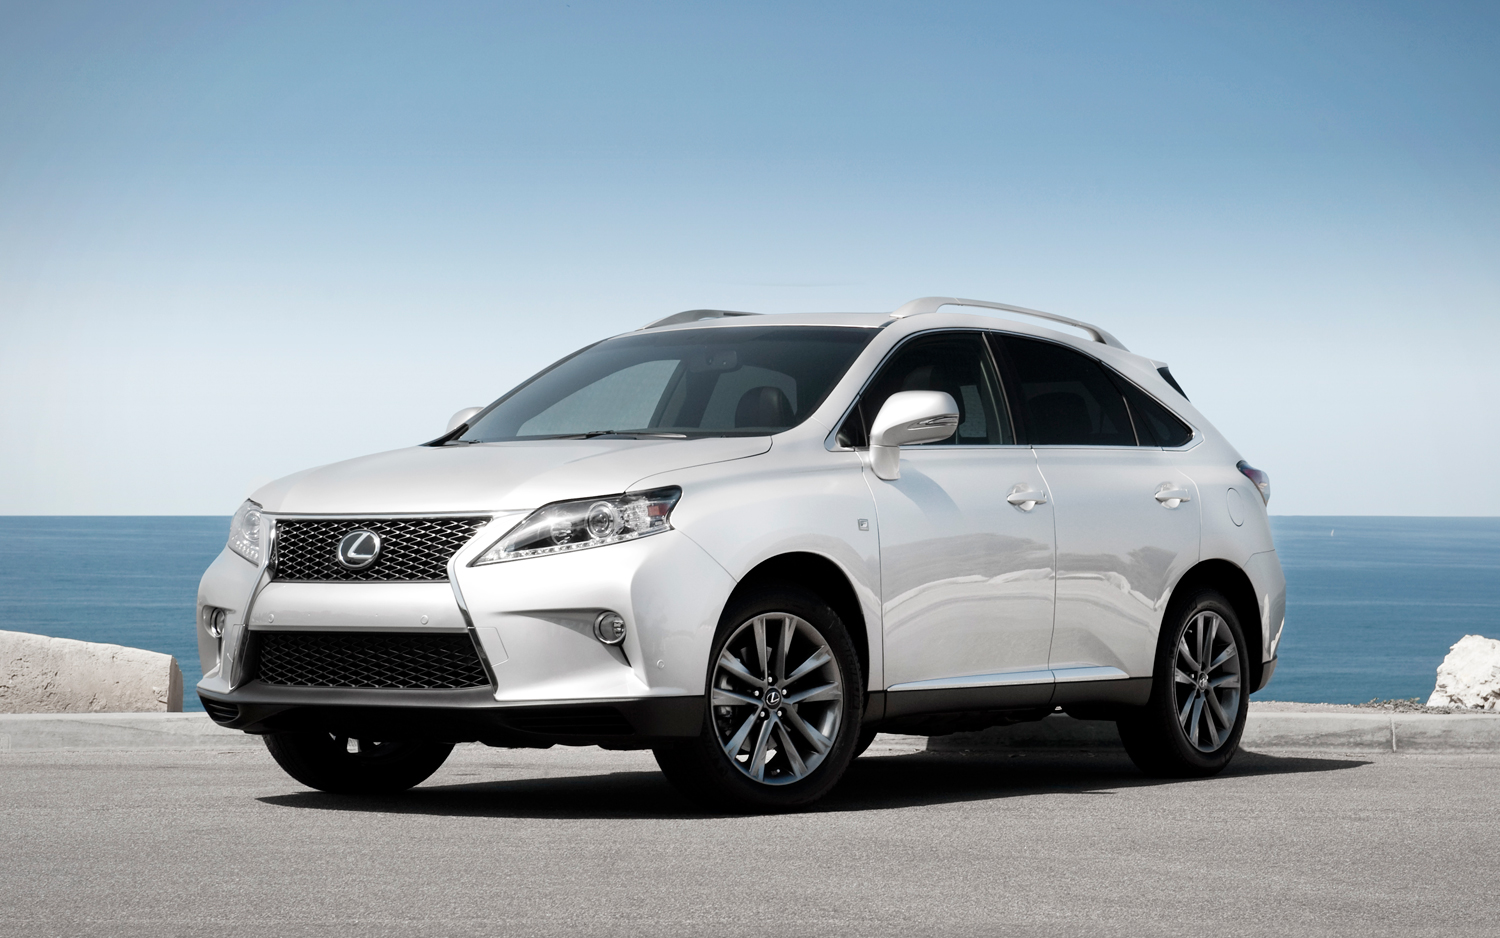 63 Lexus Pdf Manuals Download For Free Ar Manual Wiring Ct200h Diagram Rx350